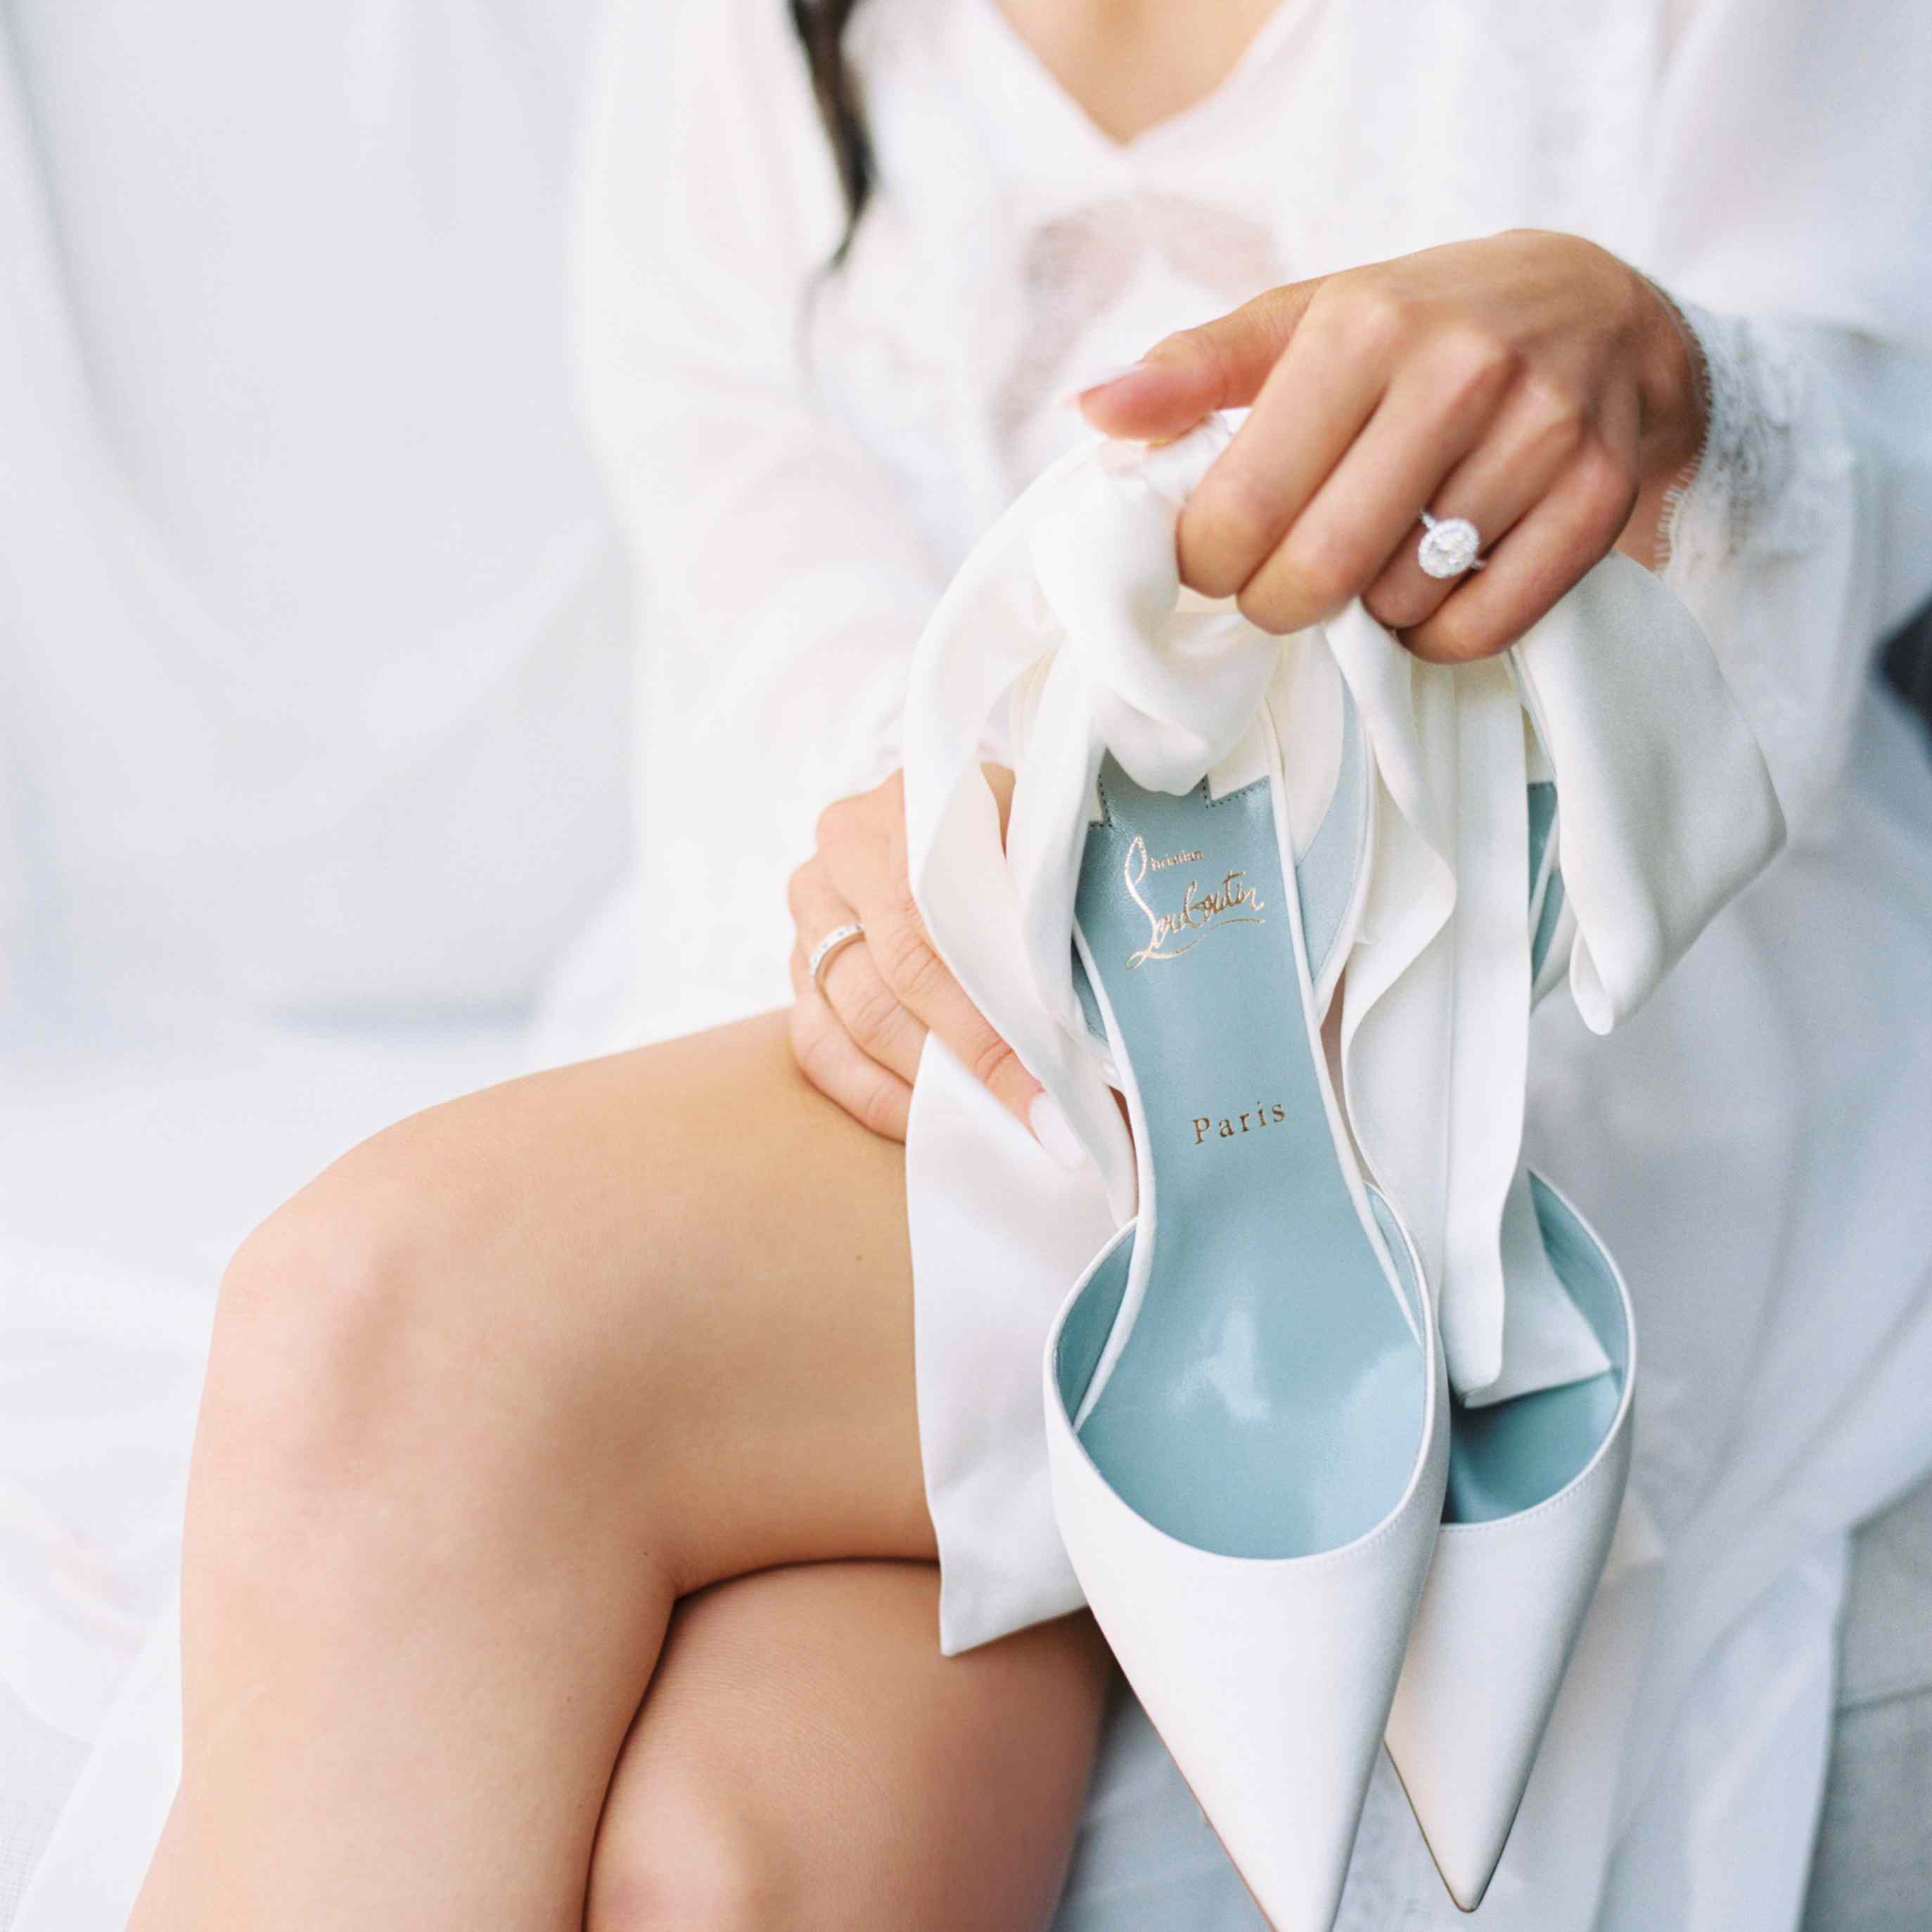 The bride holds her shoes